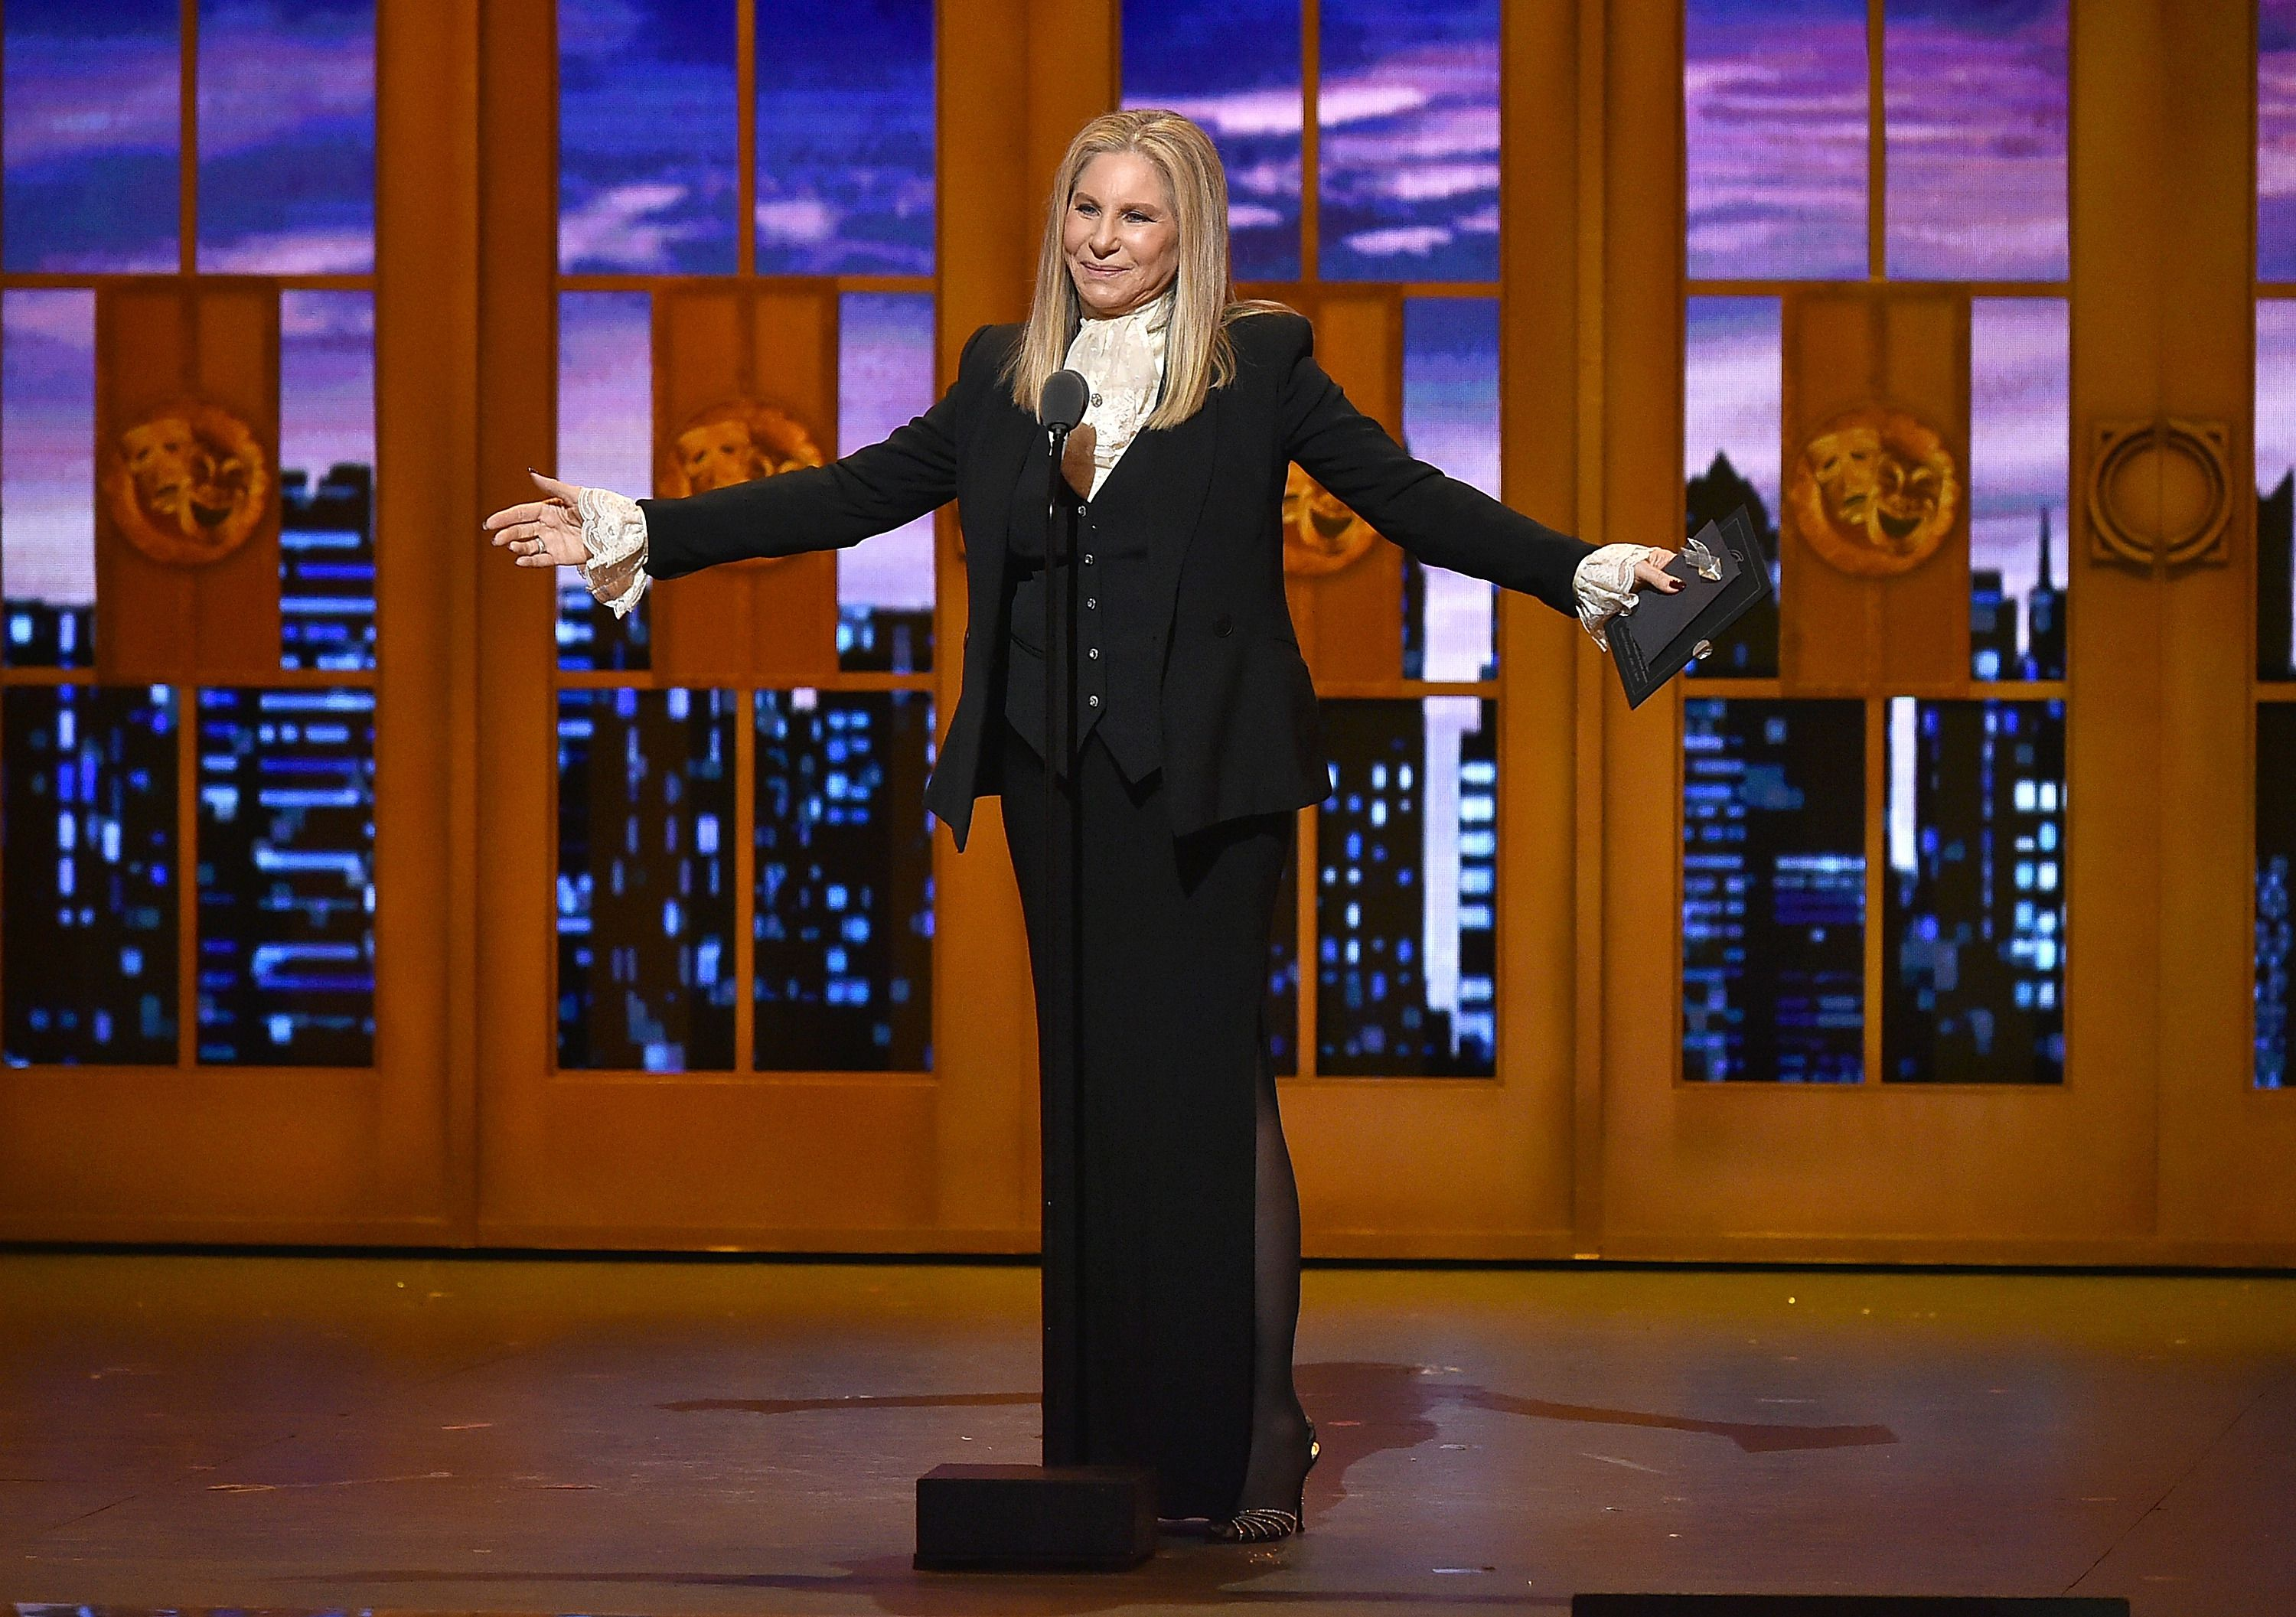 Barbra Streisand speaks onstage during the 70th Annual Tony Awards at The Beacon Theatre on June 12, 2016 in New York City.